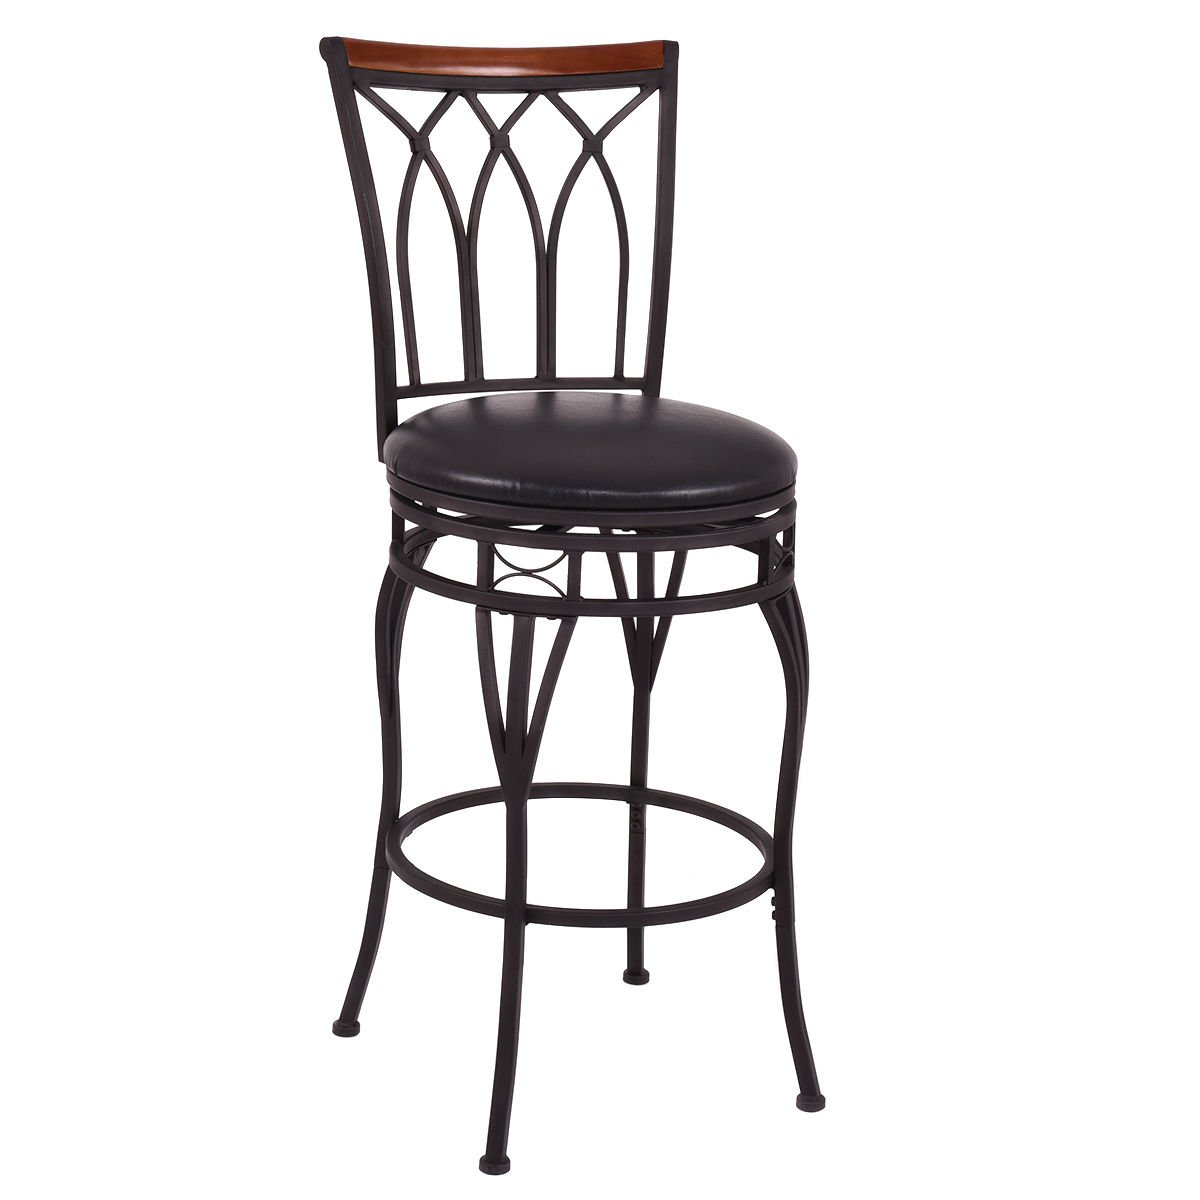 COSTWAY Bar Stool